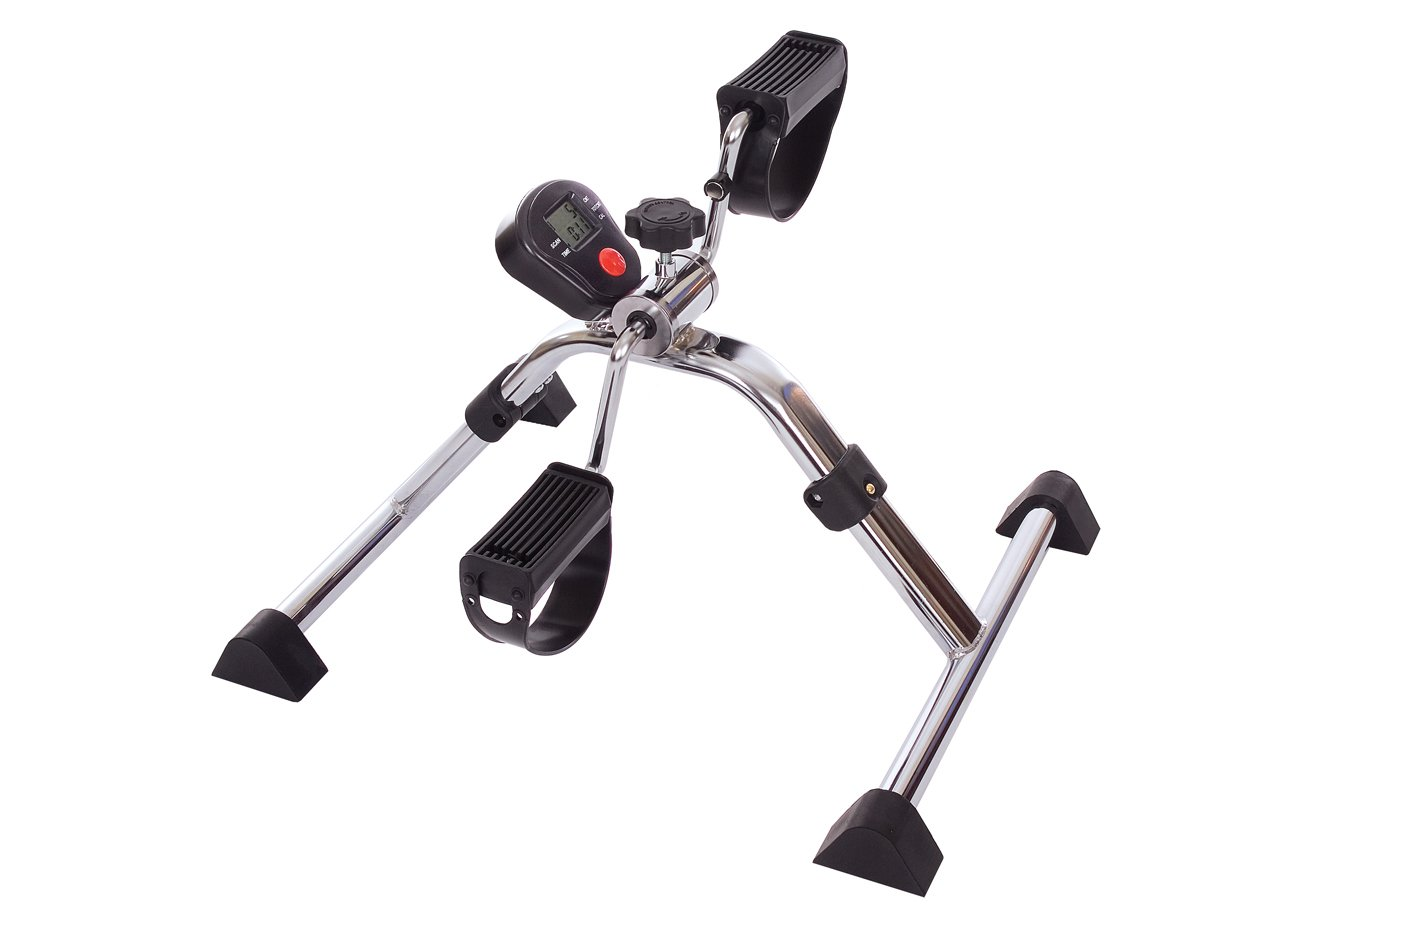 Essential Medical Supply Folding Pedal Exerciser with Meter